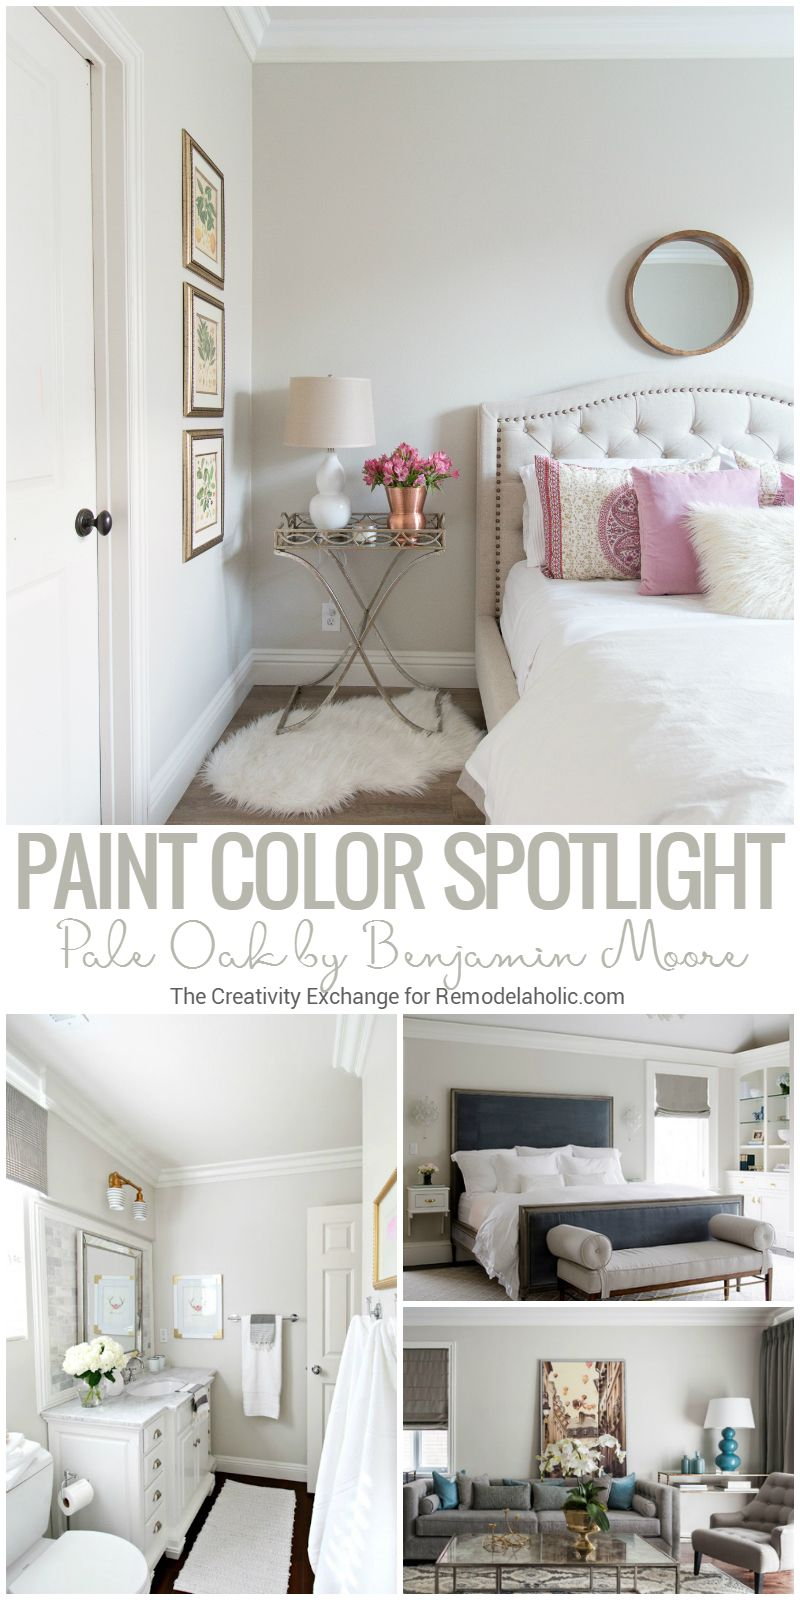 Pale Oak By Benjamin Moore Is A Balanced And Versatile Warm Neutral Griege Gray